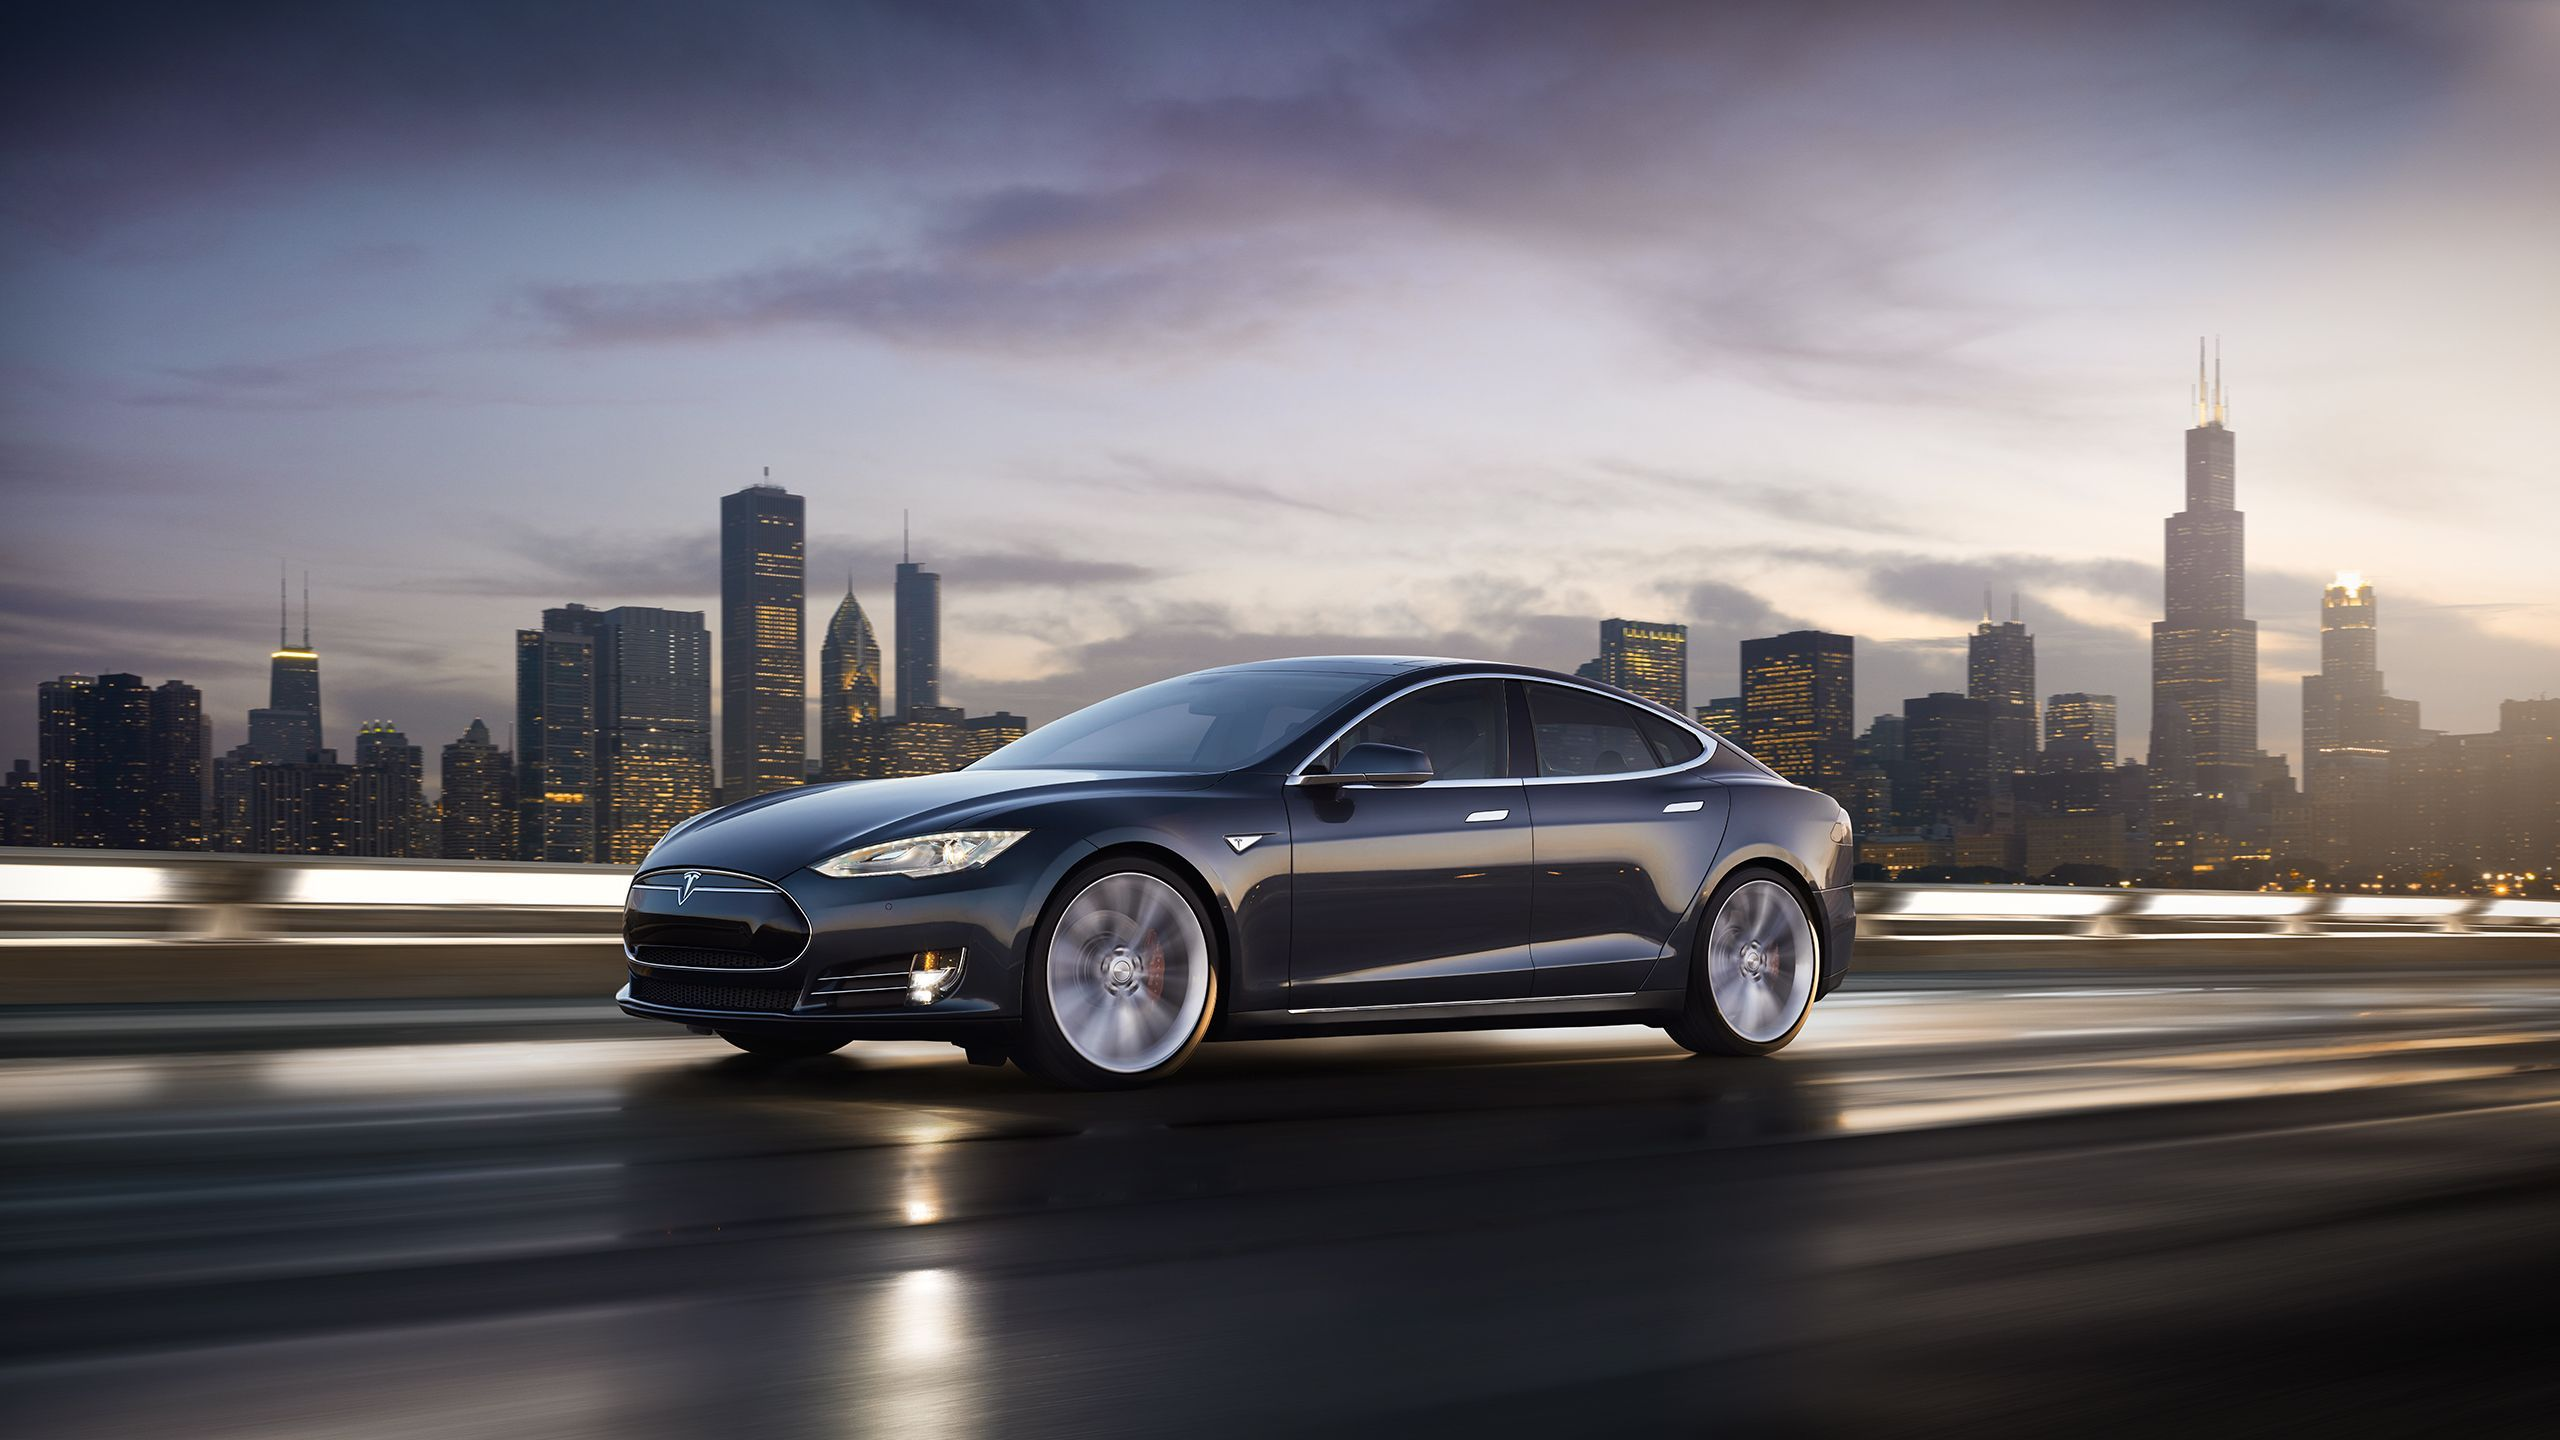 Tesla Model S electric car in wallpapers and images